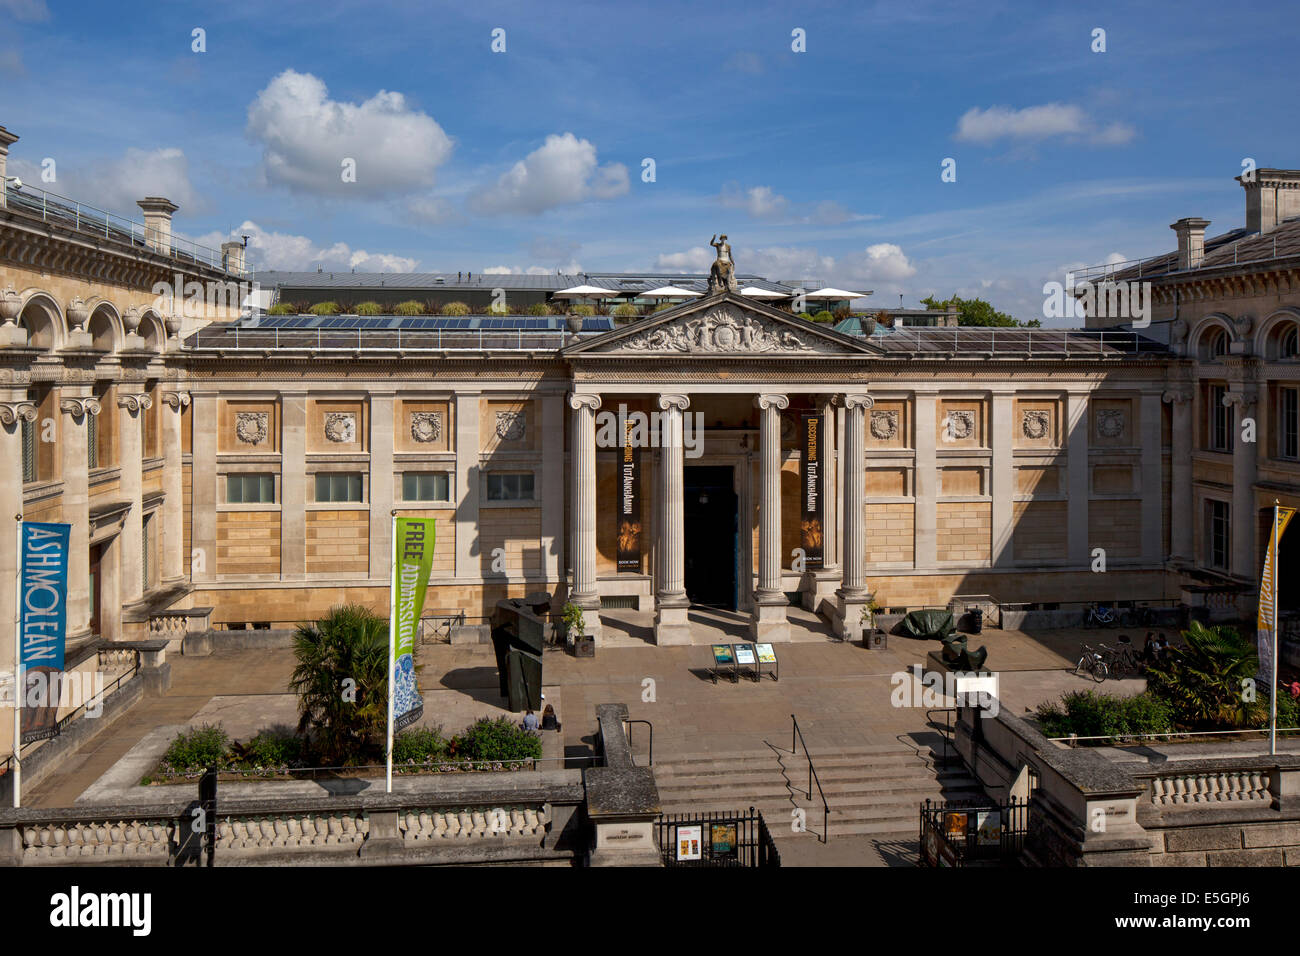 Main facade and entrance to the Ashmolean museum Oxford England - Stock Image